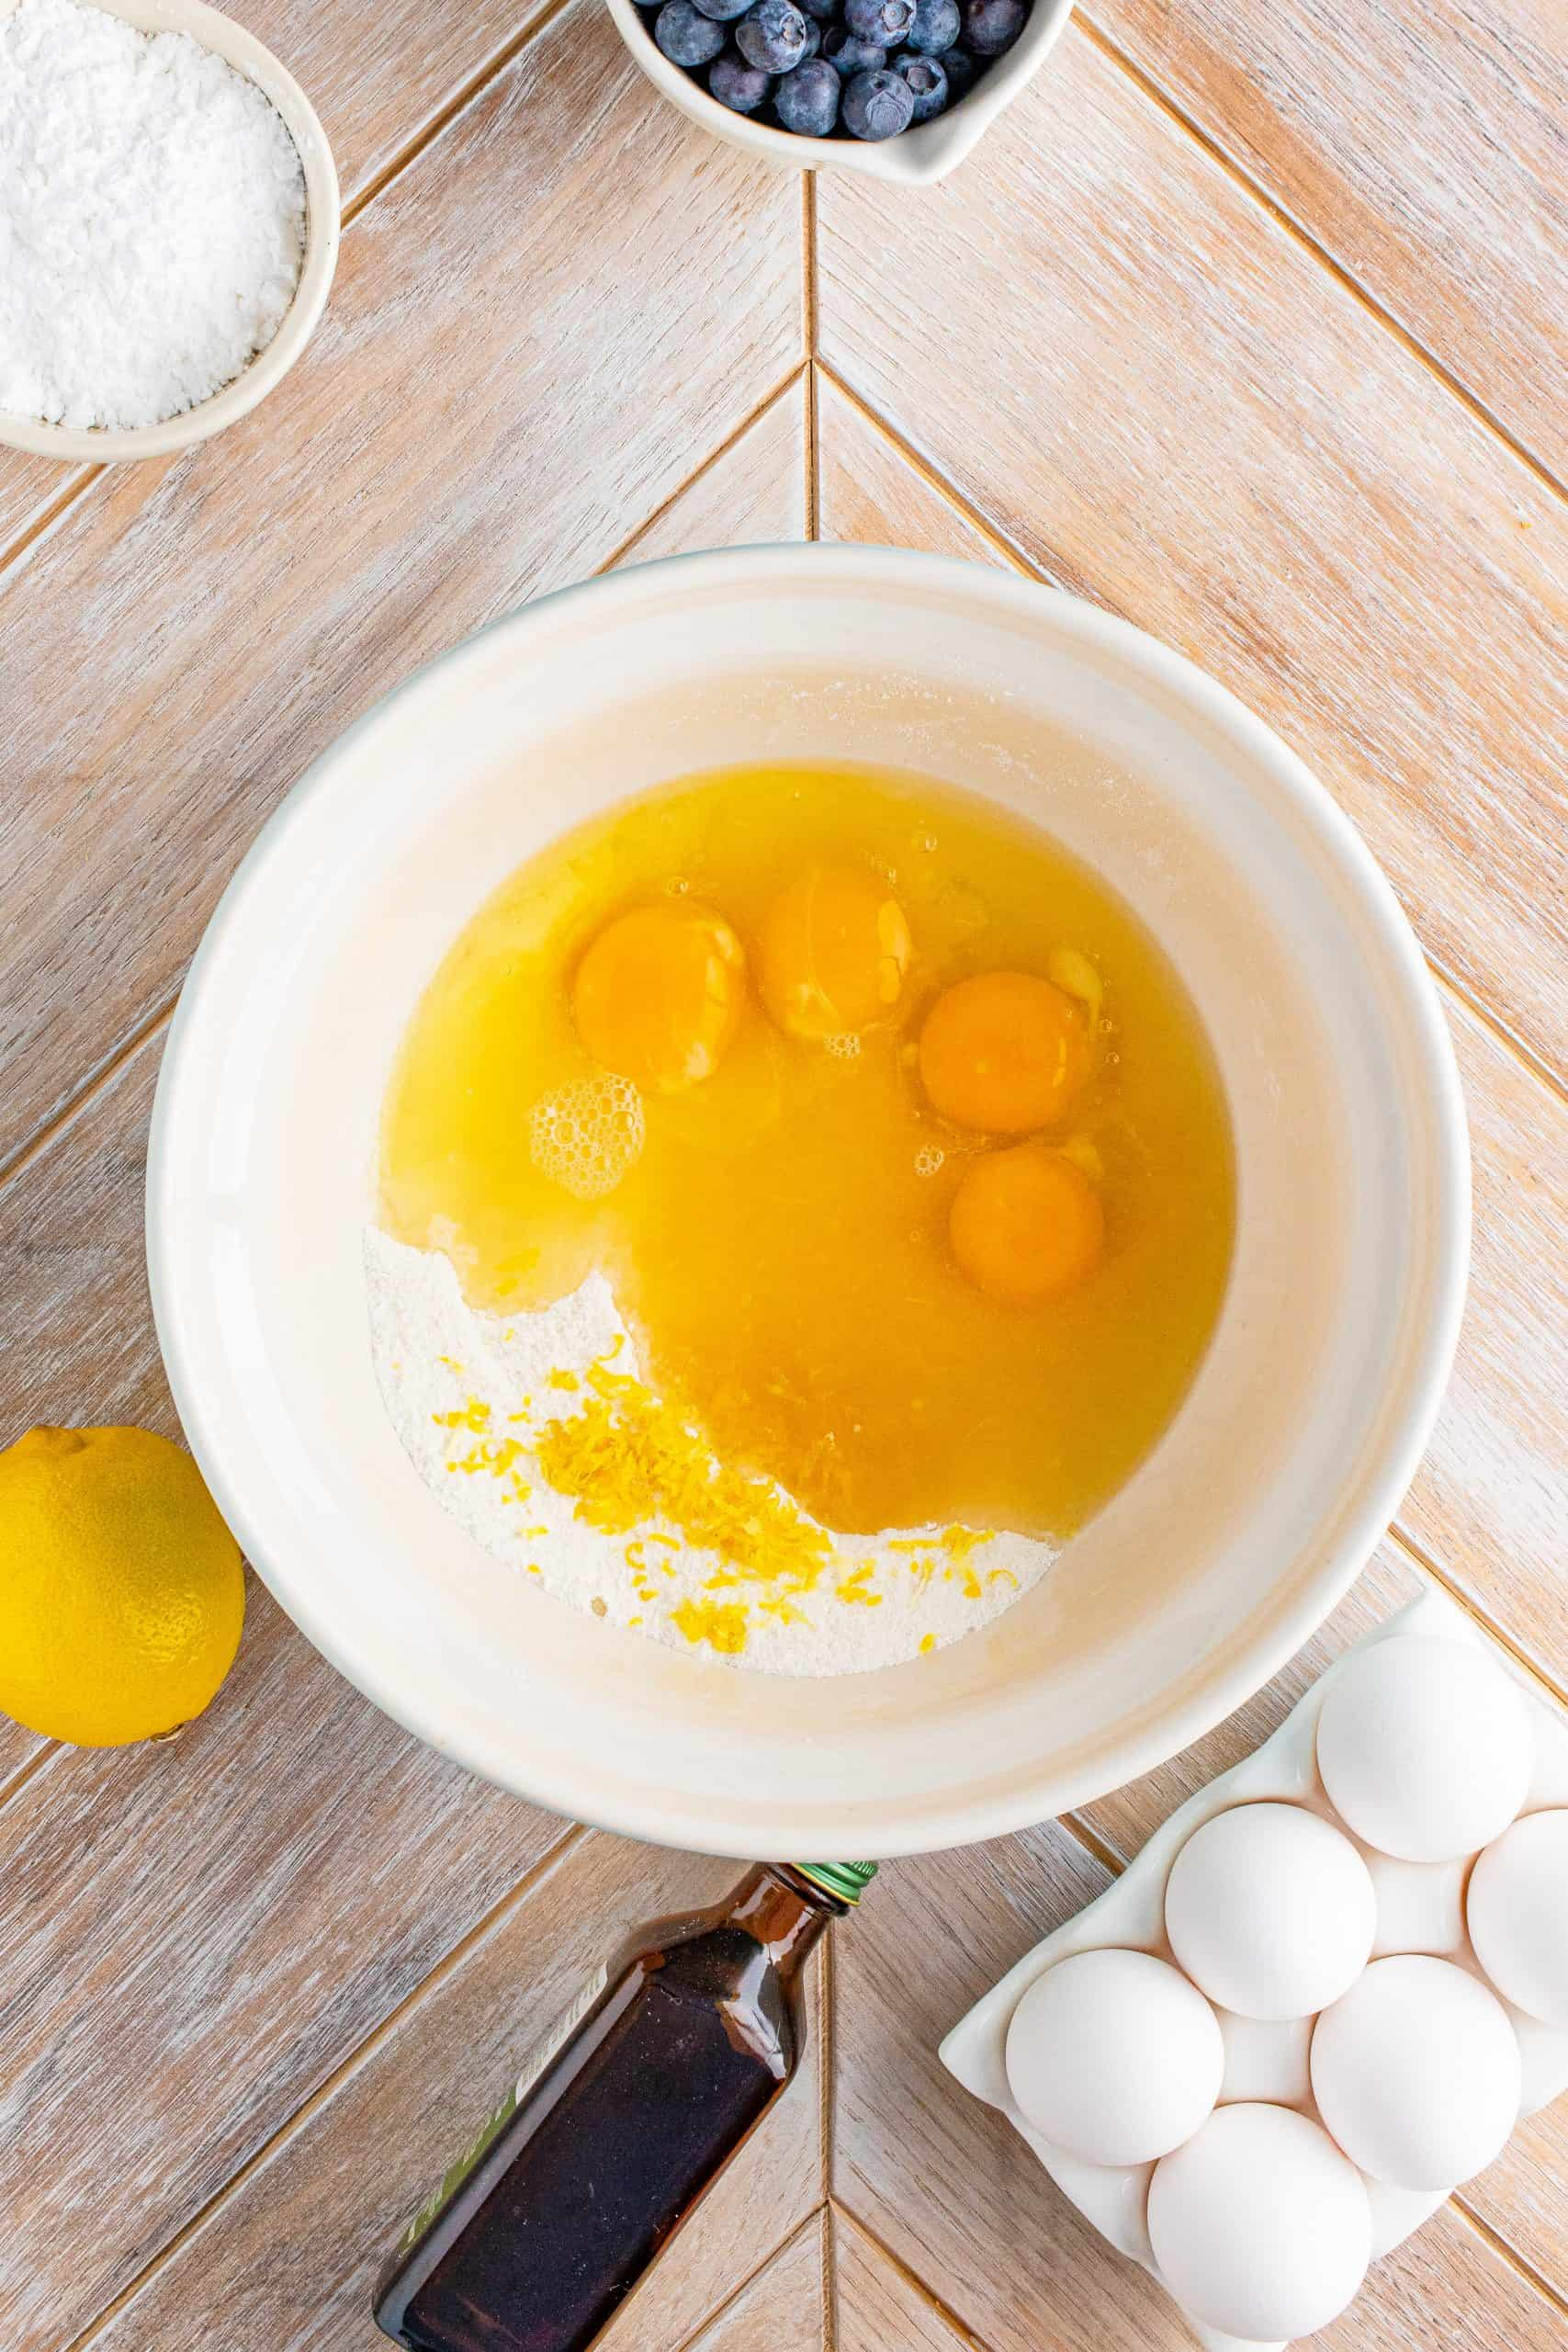 Eggs and lemon zest added to flour and sugar mixture in white bowl.